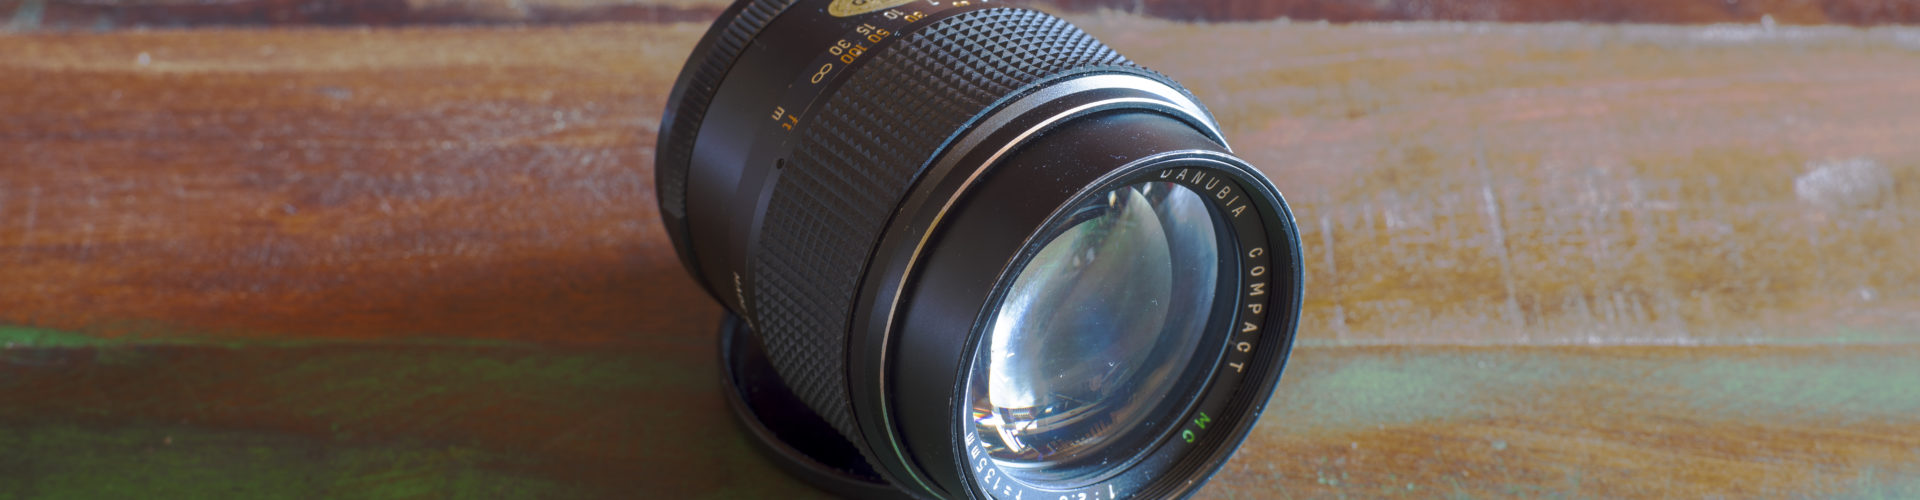 Auto Danubia Compact 135mm f/2.8 M42 Lens Review